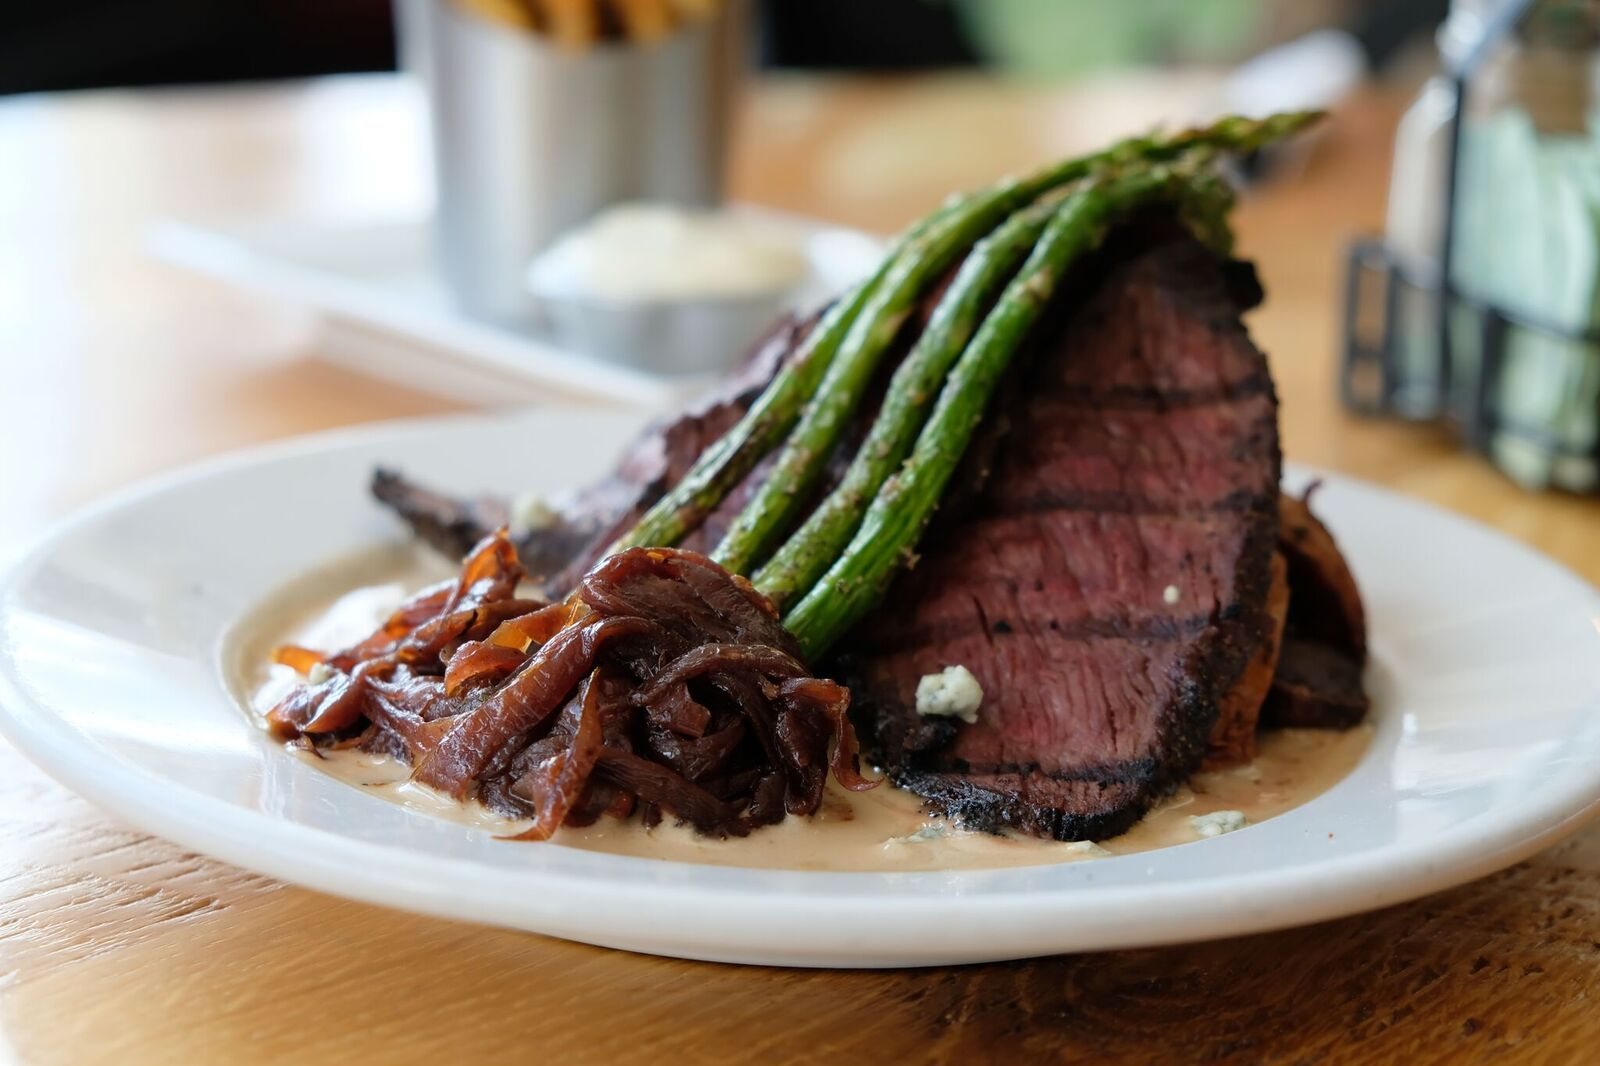 Cafe - From breakfast until well into the night, our chefs prepare scratch-made entrees like our renowned Tri-Tip steak with grilled asparagus and irresistible savory sides like our house pommes frites with herb aioli for the thousands of guests we get to serve each week.